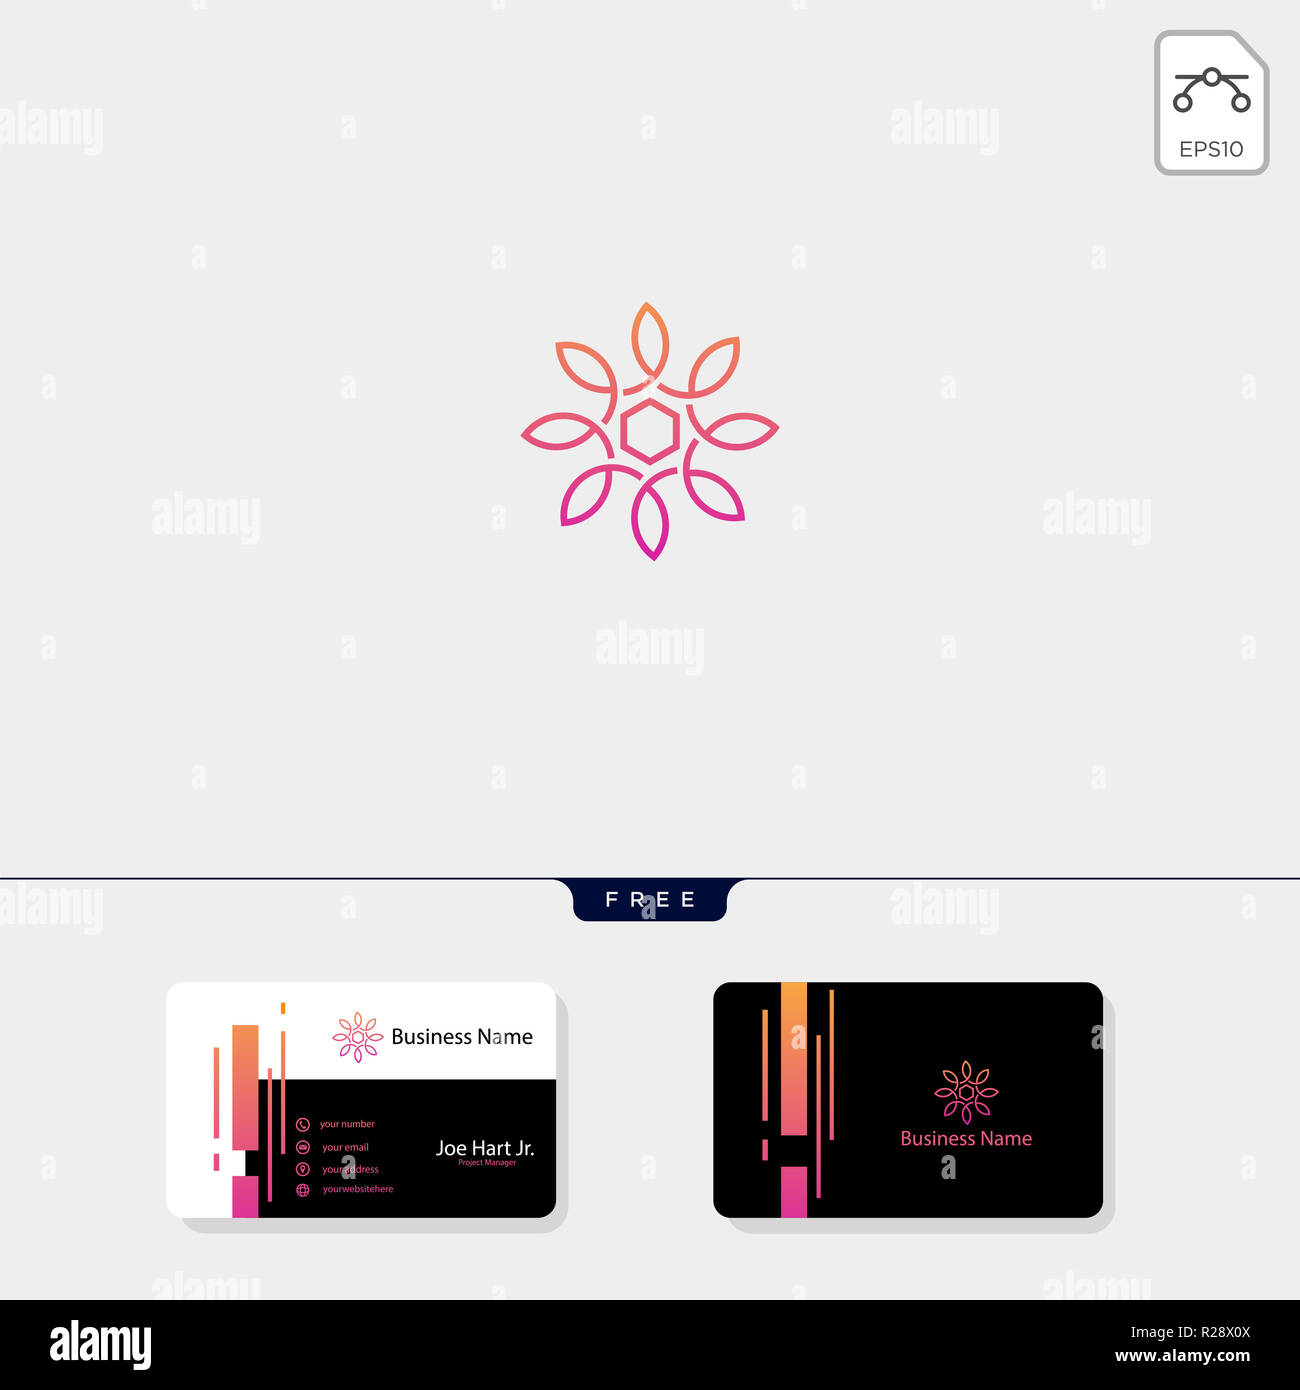 Line Art Flower Fashion Creative Logo Template Vector Illustration Free Business Card Design Template Stock Photo Alamy